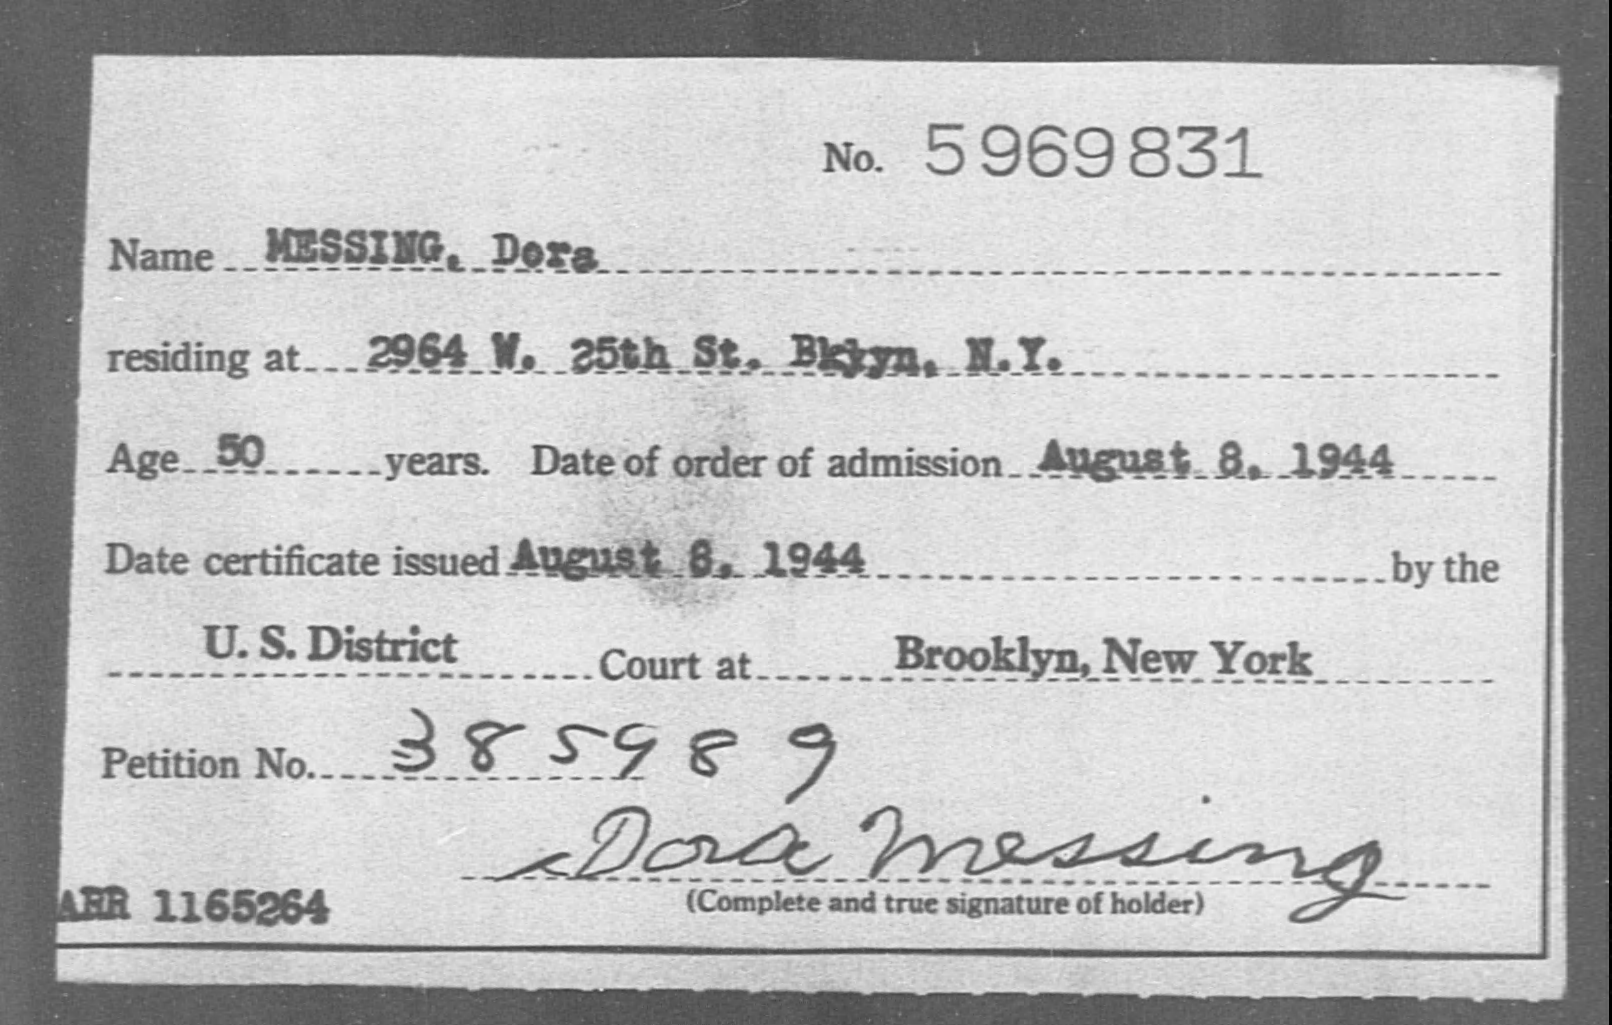 MESSING, Dora - Born: [BLANK], Naturalized: 1944